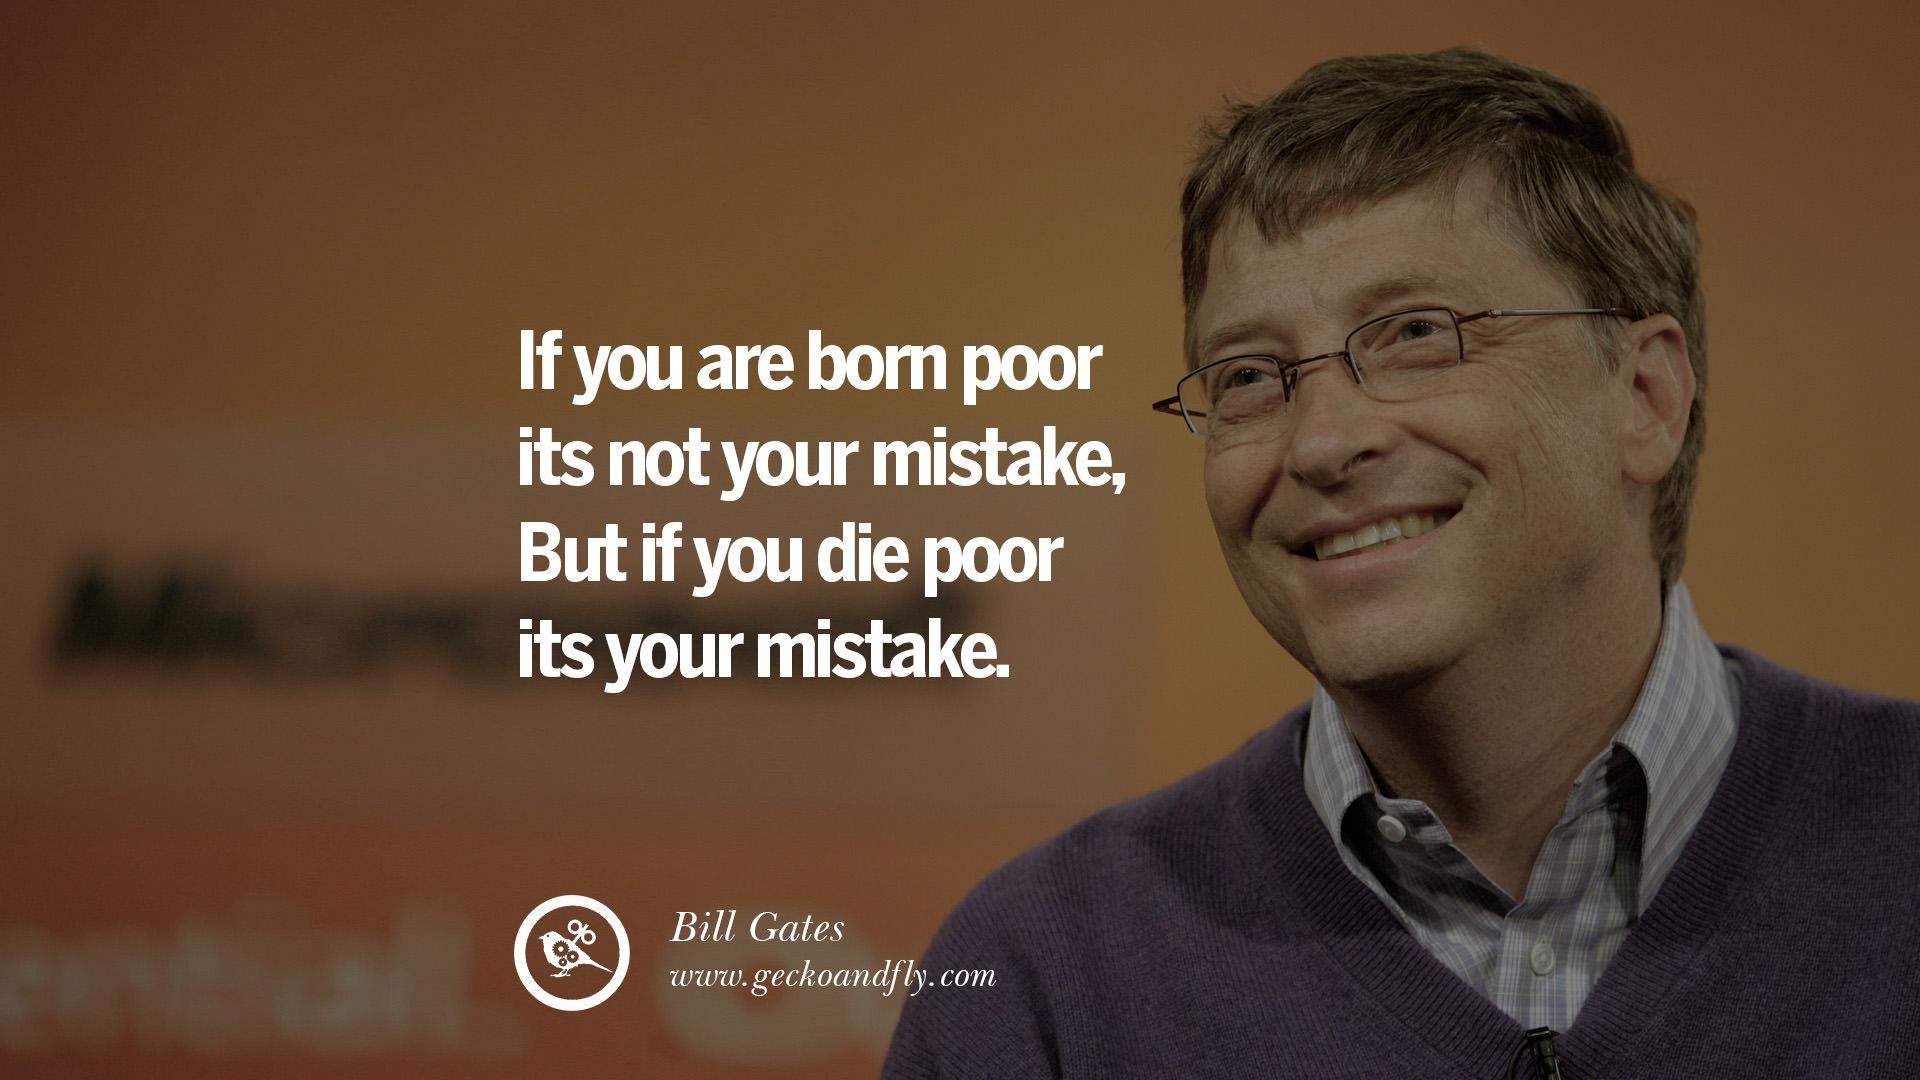 If you are born poor it's not your mistake, but if you die poor it's your mistake. – Bill Gates {1920X1080}